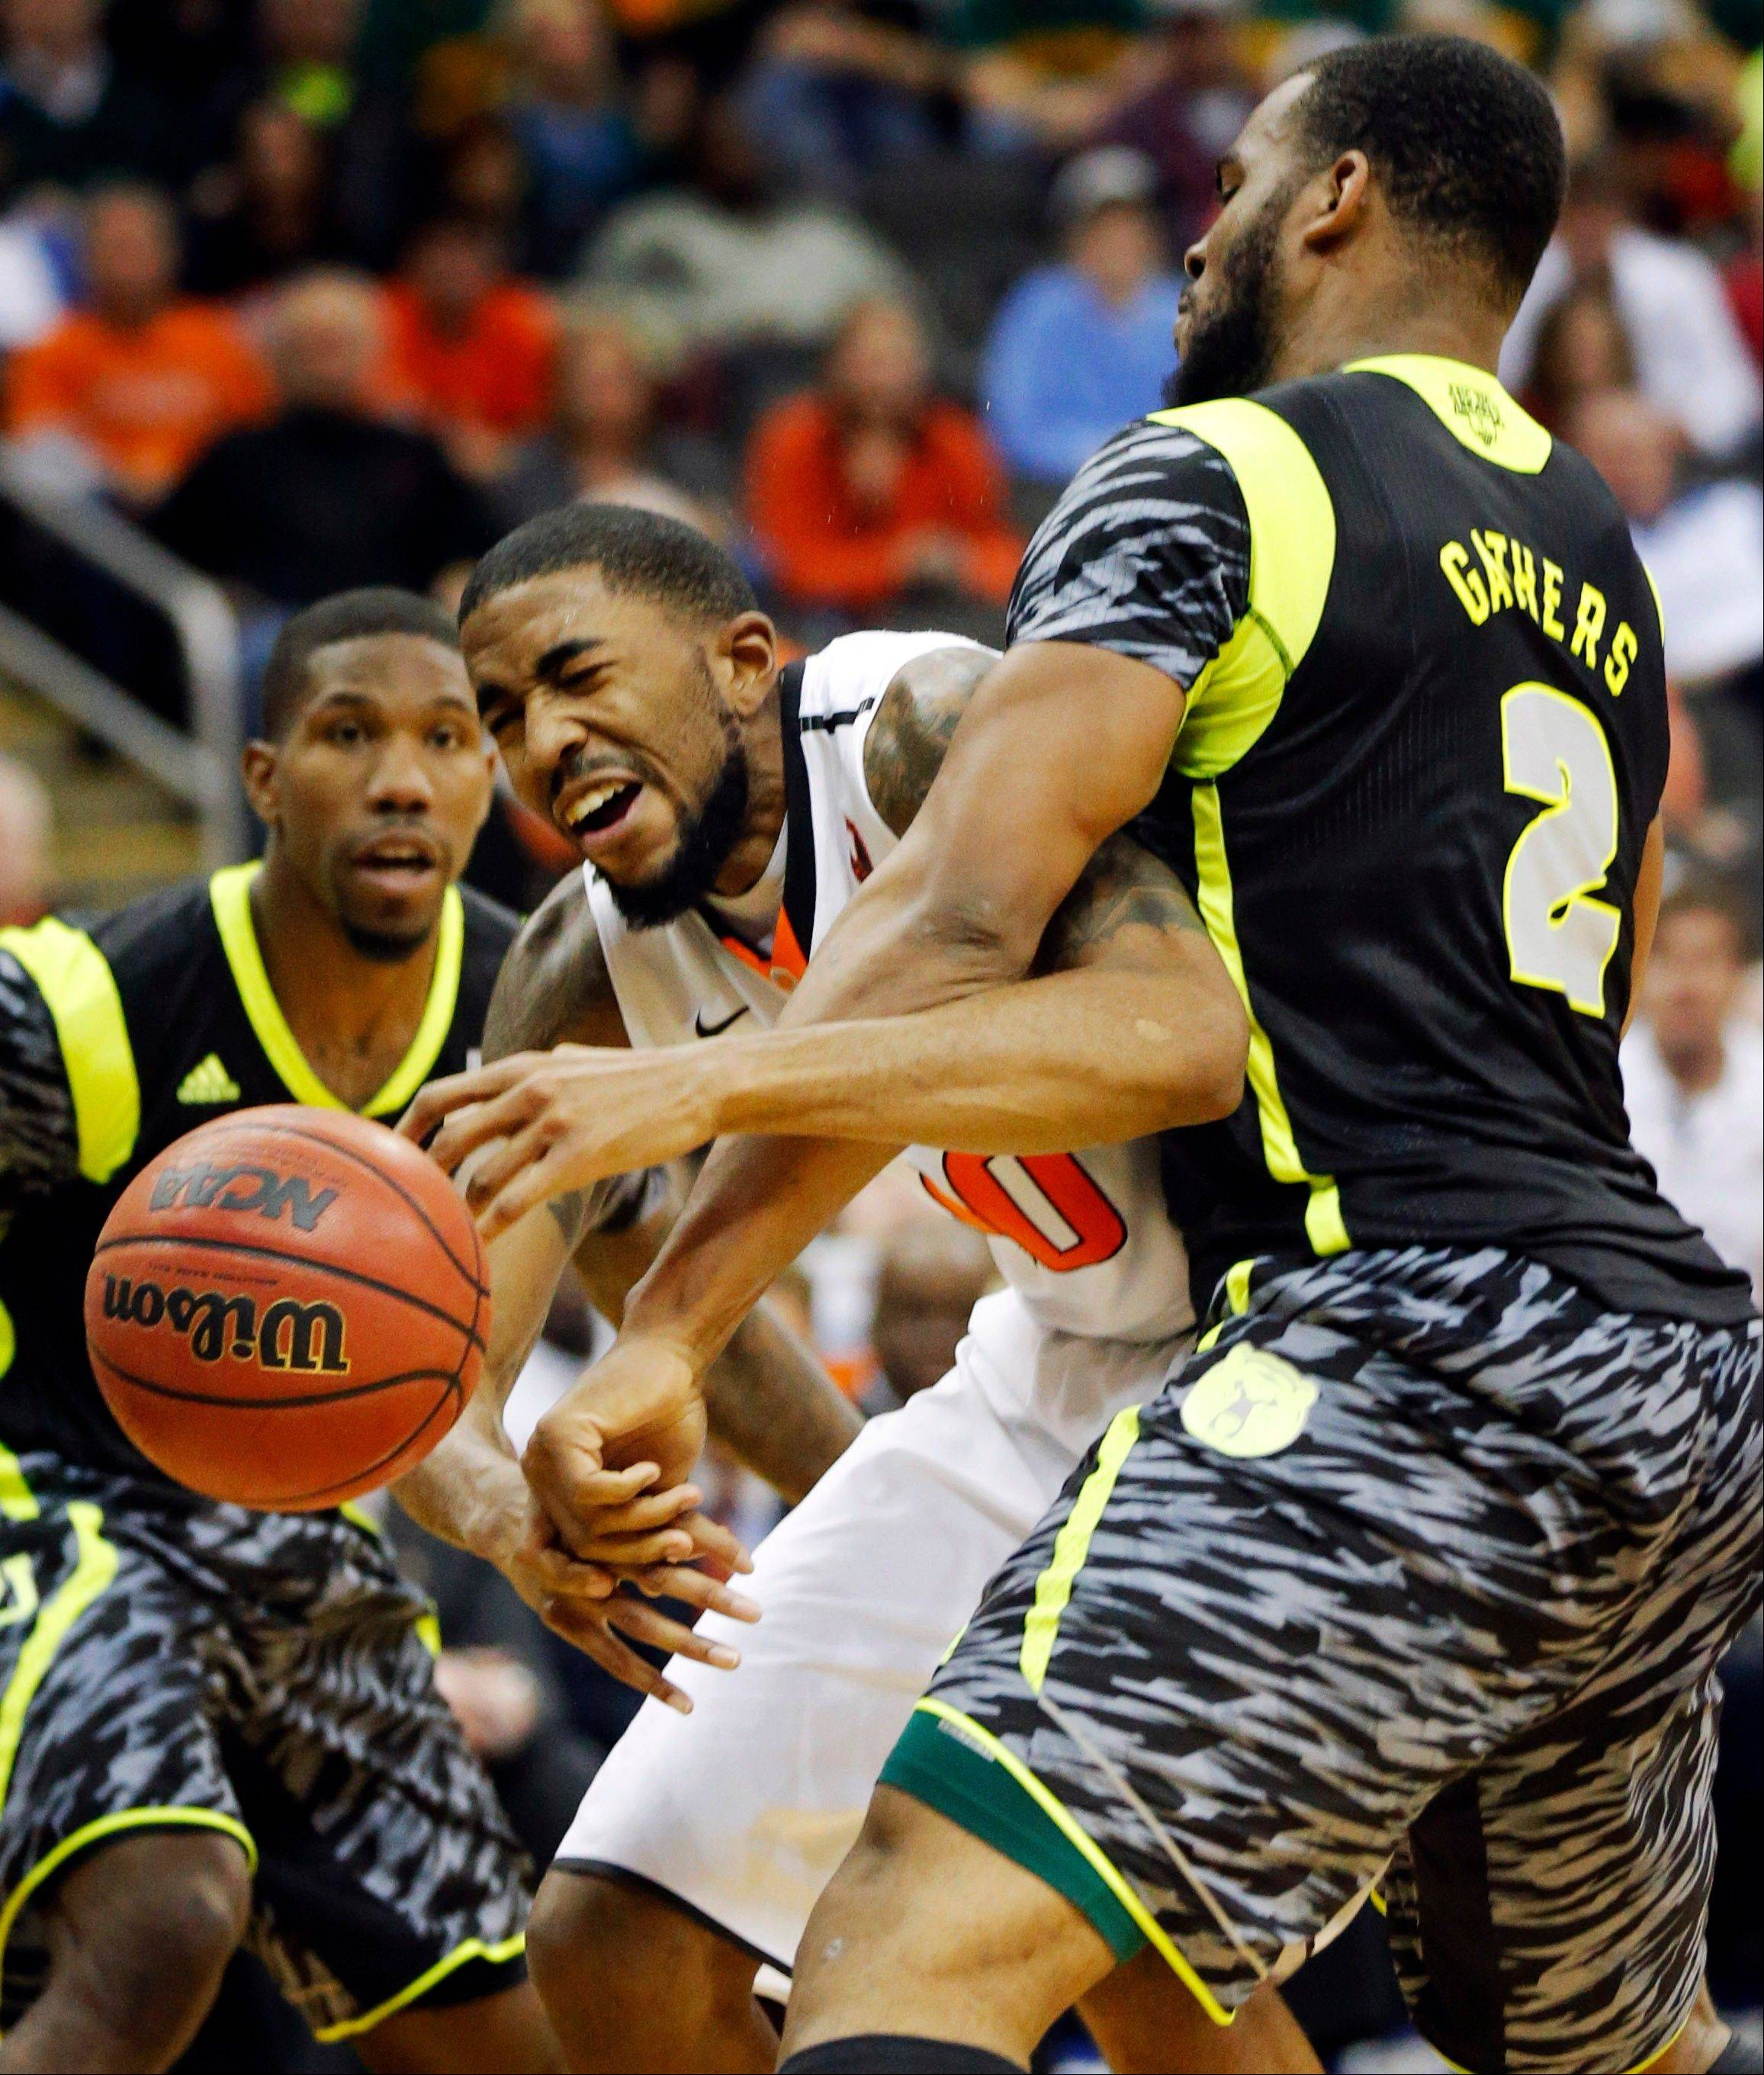 This March 14 photo shows Oklahoma State playing Baylor in their Big 12 tournament in Kansas City, Mo. The neon-colored jerseys and camouflage-covered shorts debuted by six teams in their post-season conference championships ahead of the NCAA men�s basketball tournament weren�t well received in the press and social media.